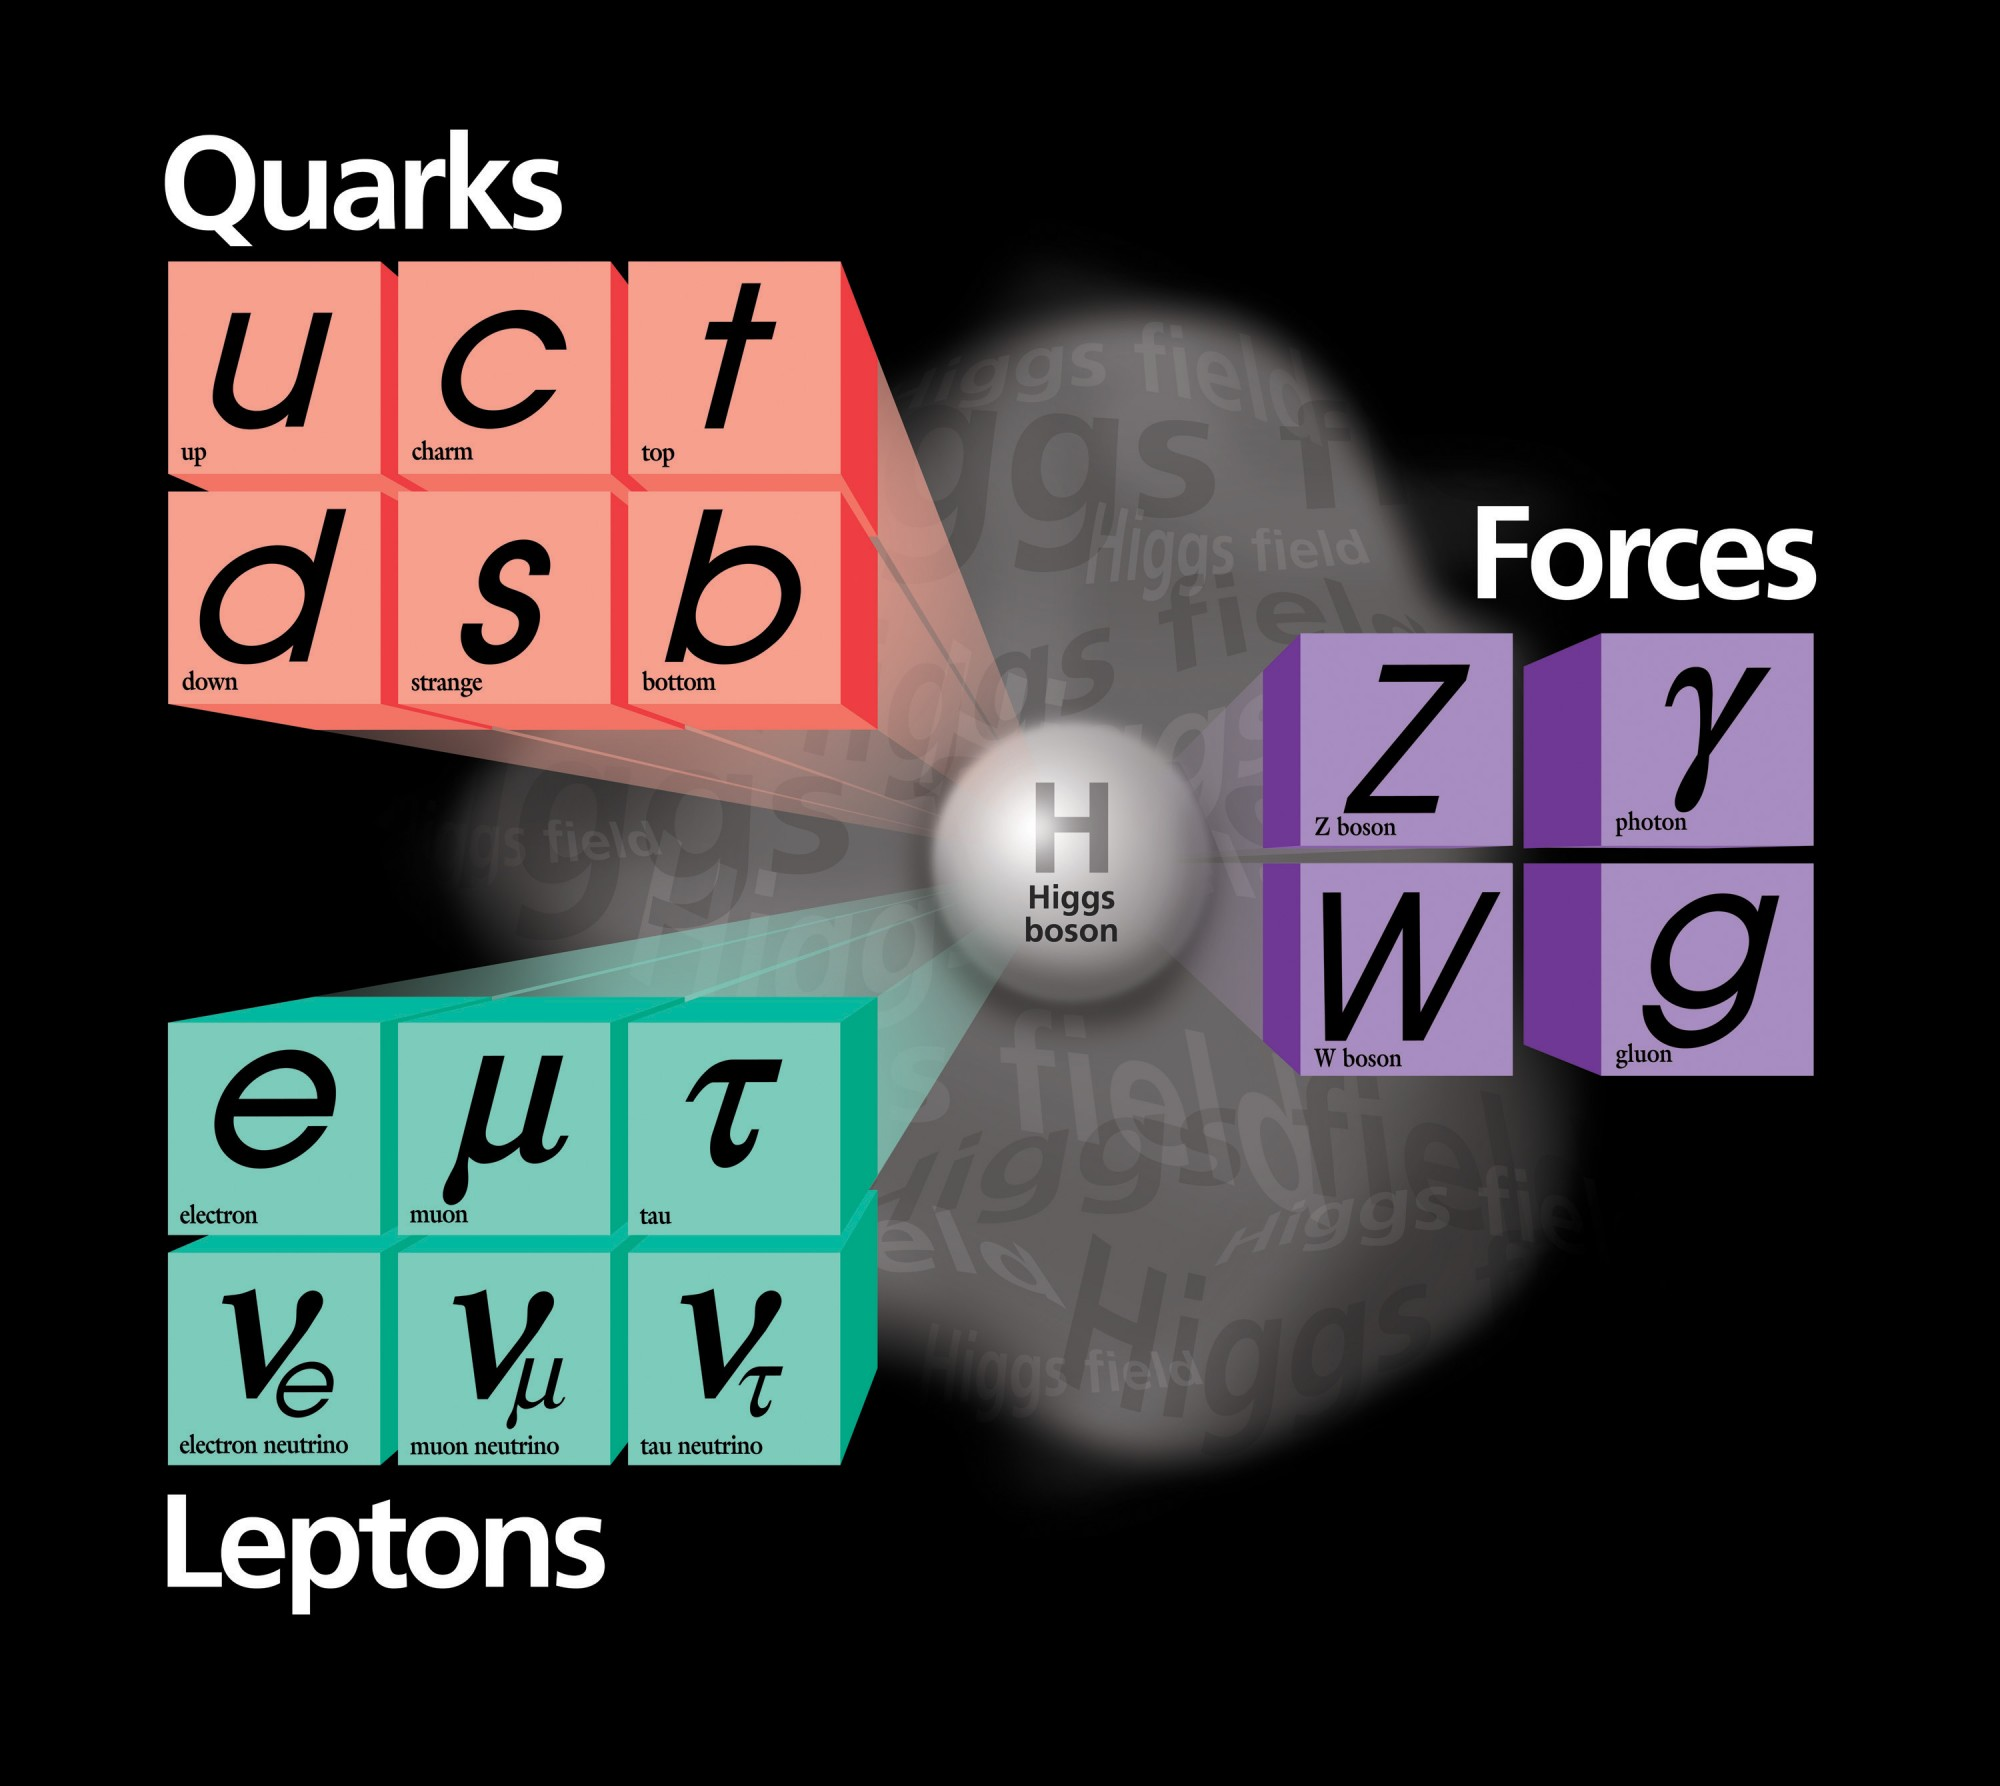 The Higgs boson will decay into a pair of any of these particles.  These different decay products are more of less likely.